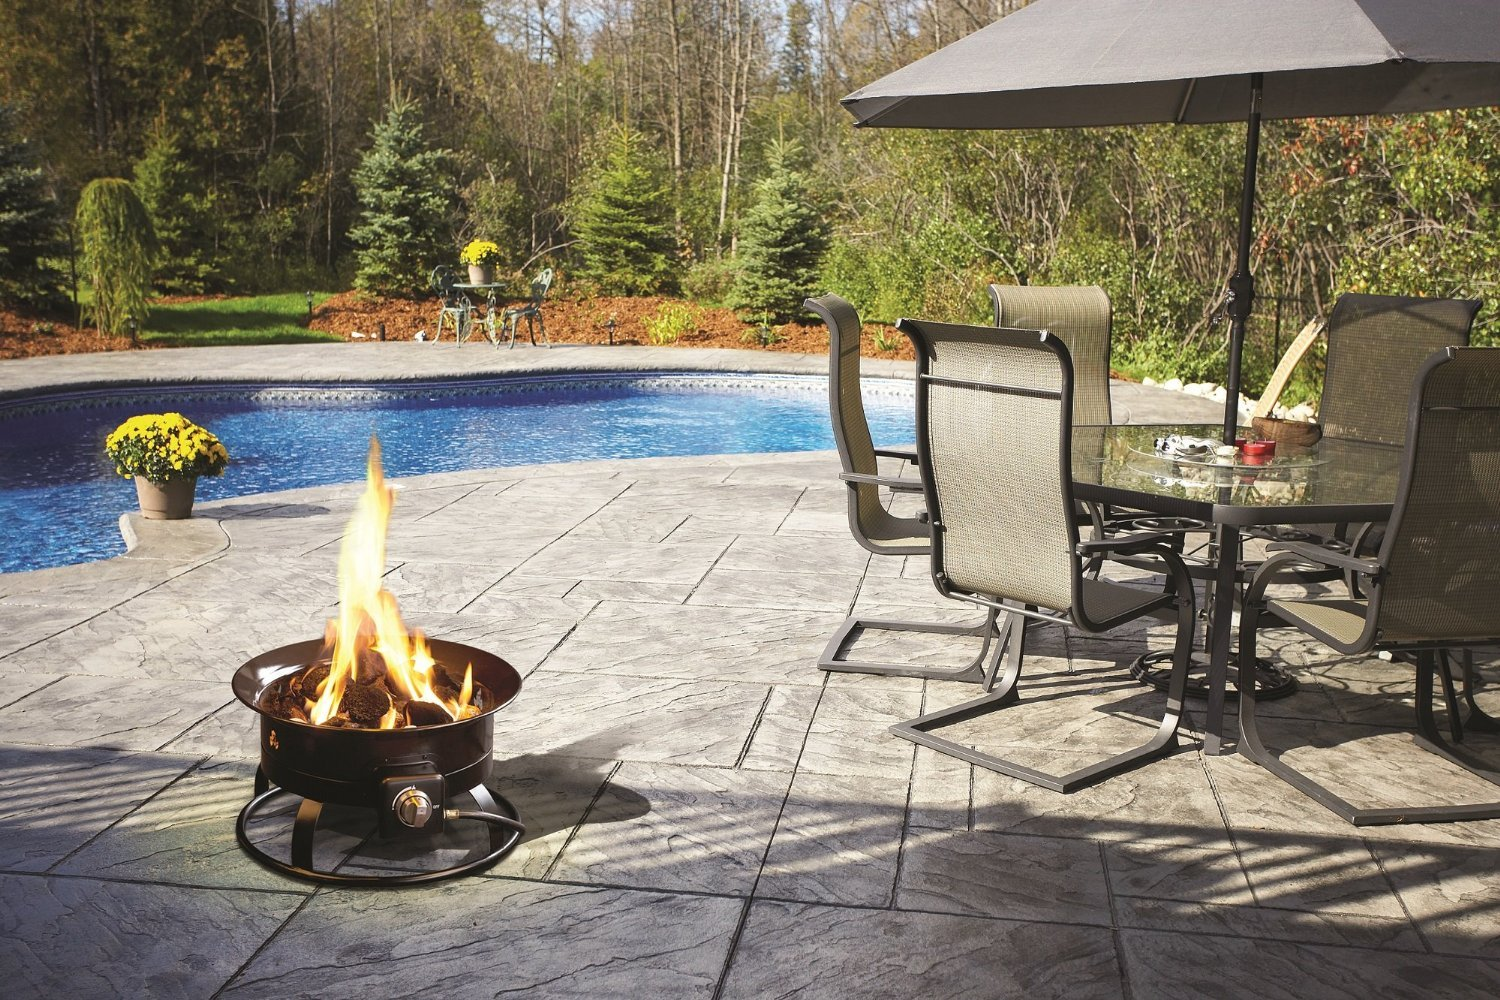 Portable Patio Fire Pit :  Portable Propane Fire Pit Wood CSA Approval Outdoor Patio New  Fire